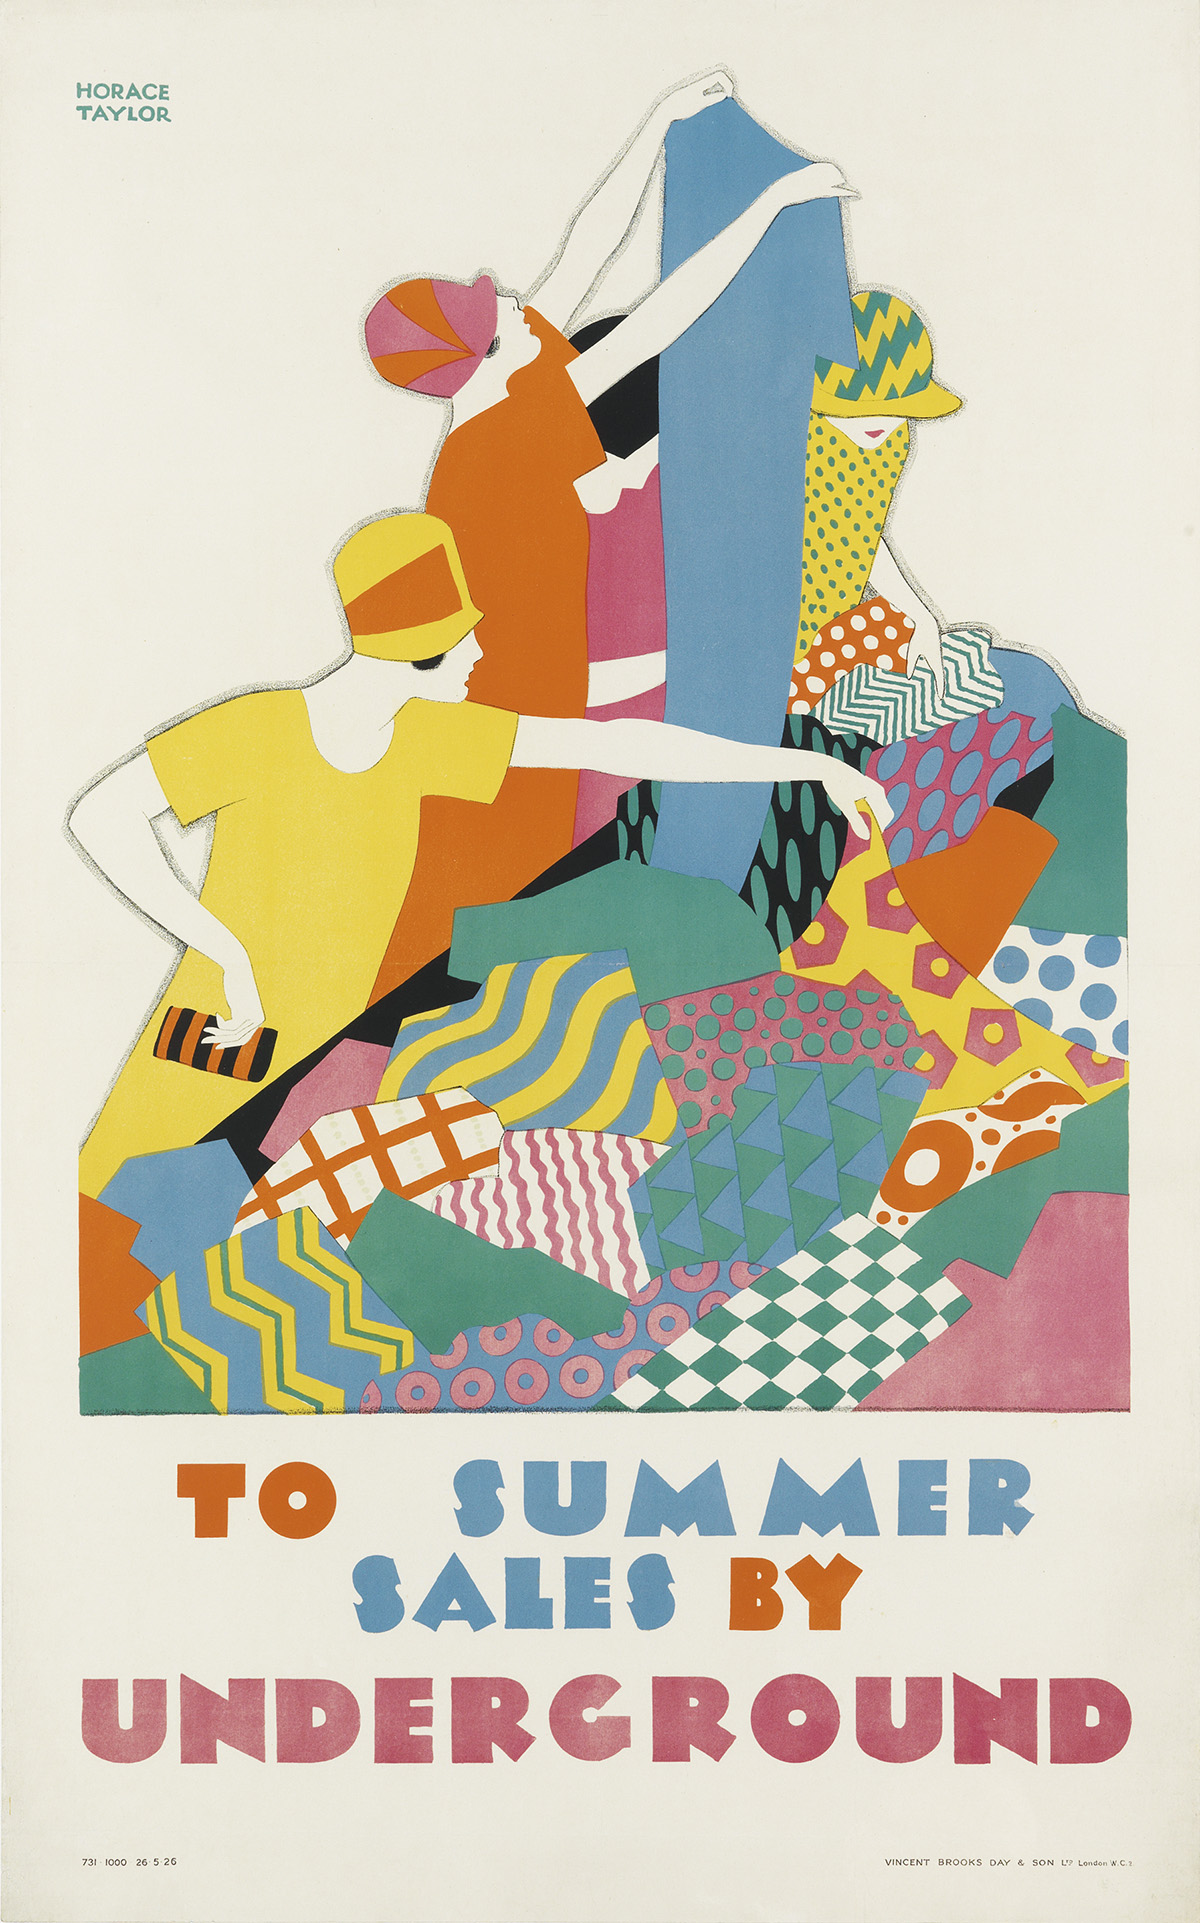 HORACE-TAYLOR-(1881-1934)-TO-SUMMER-SALES-BY-UNDERGROUND-192